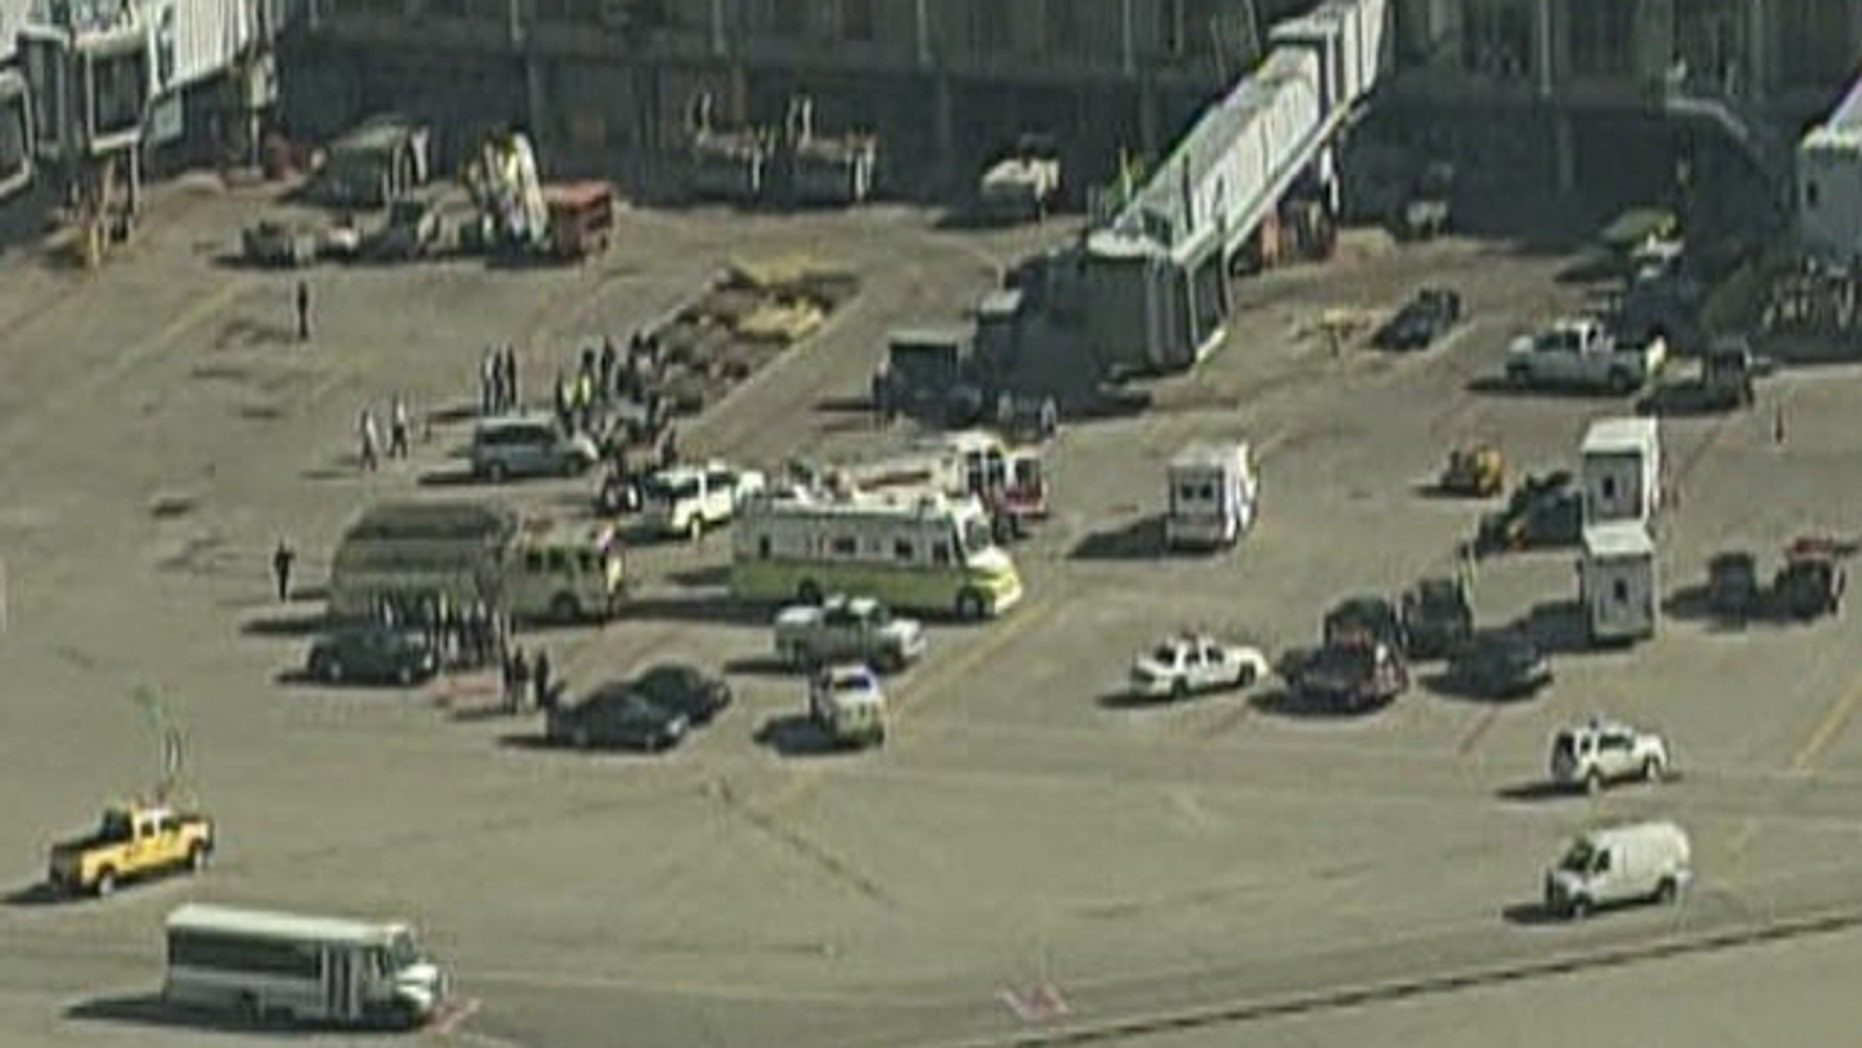 Nov. 1: Emergency crews respond to a Hazmat situation at O'Hare Airport.